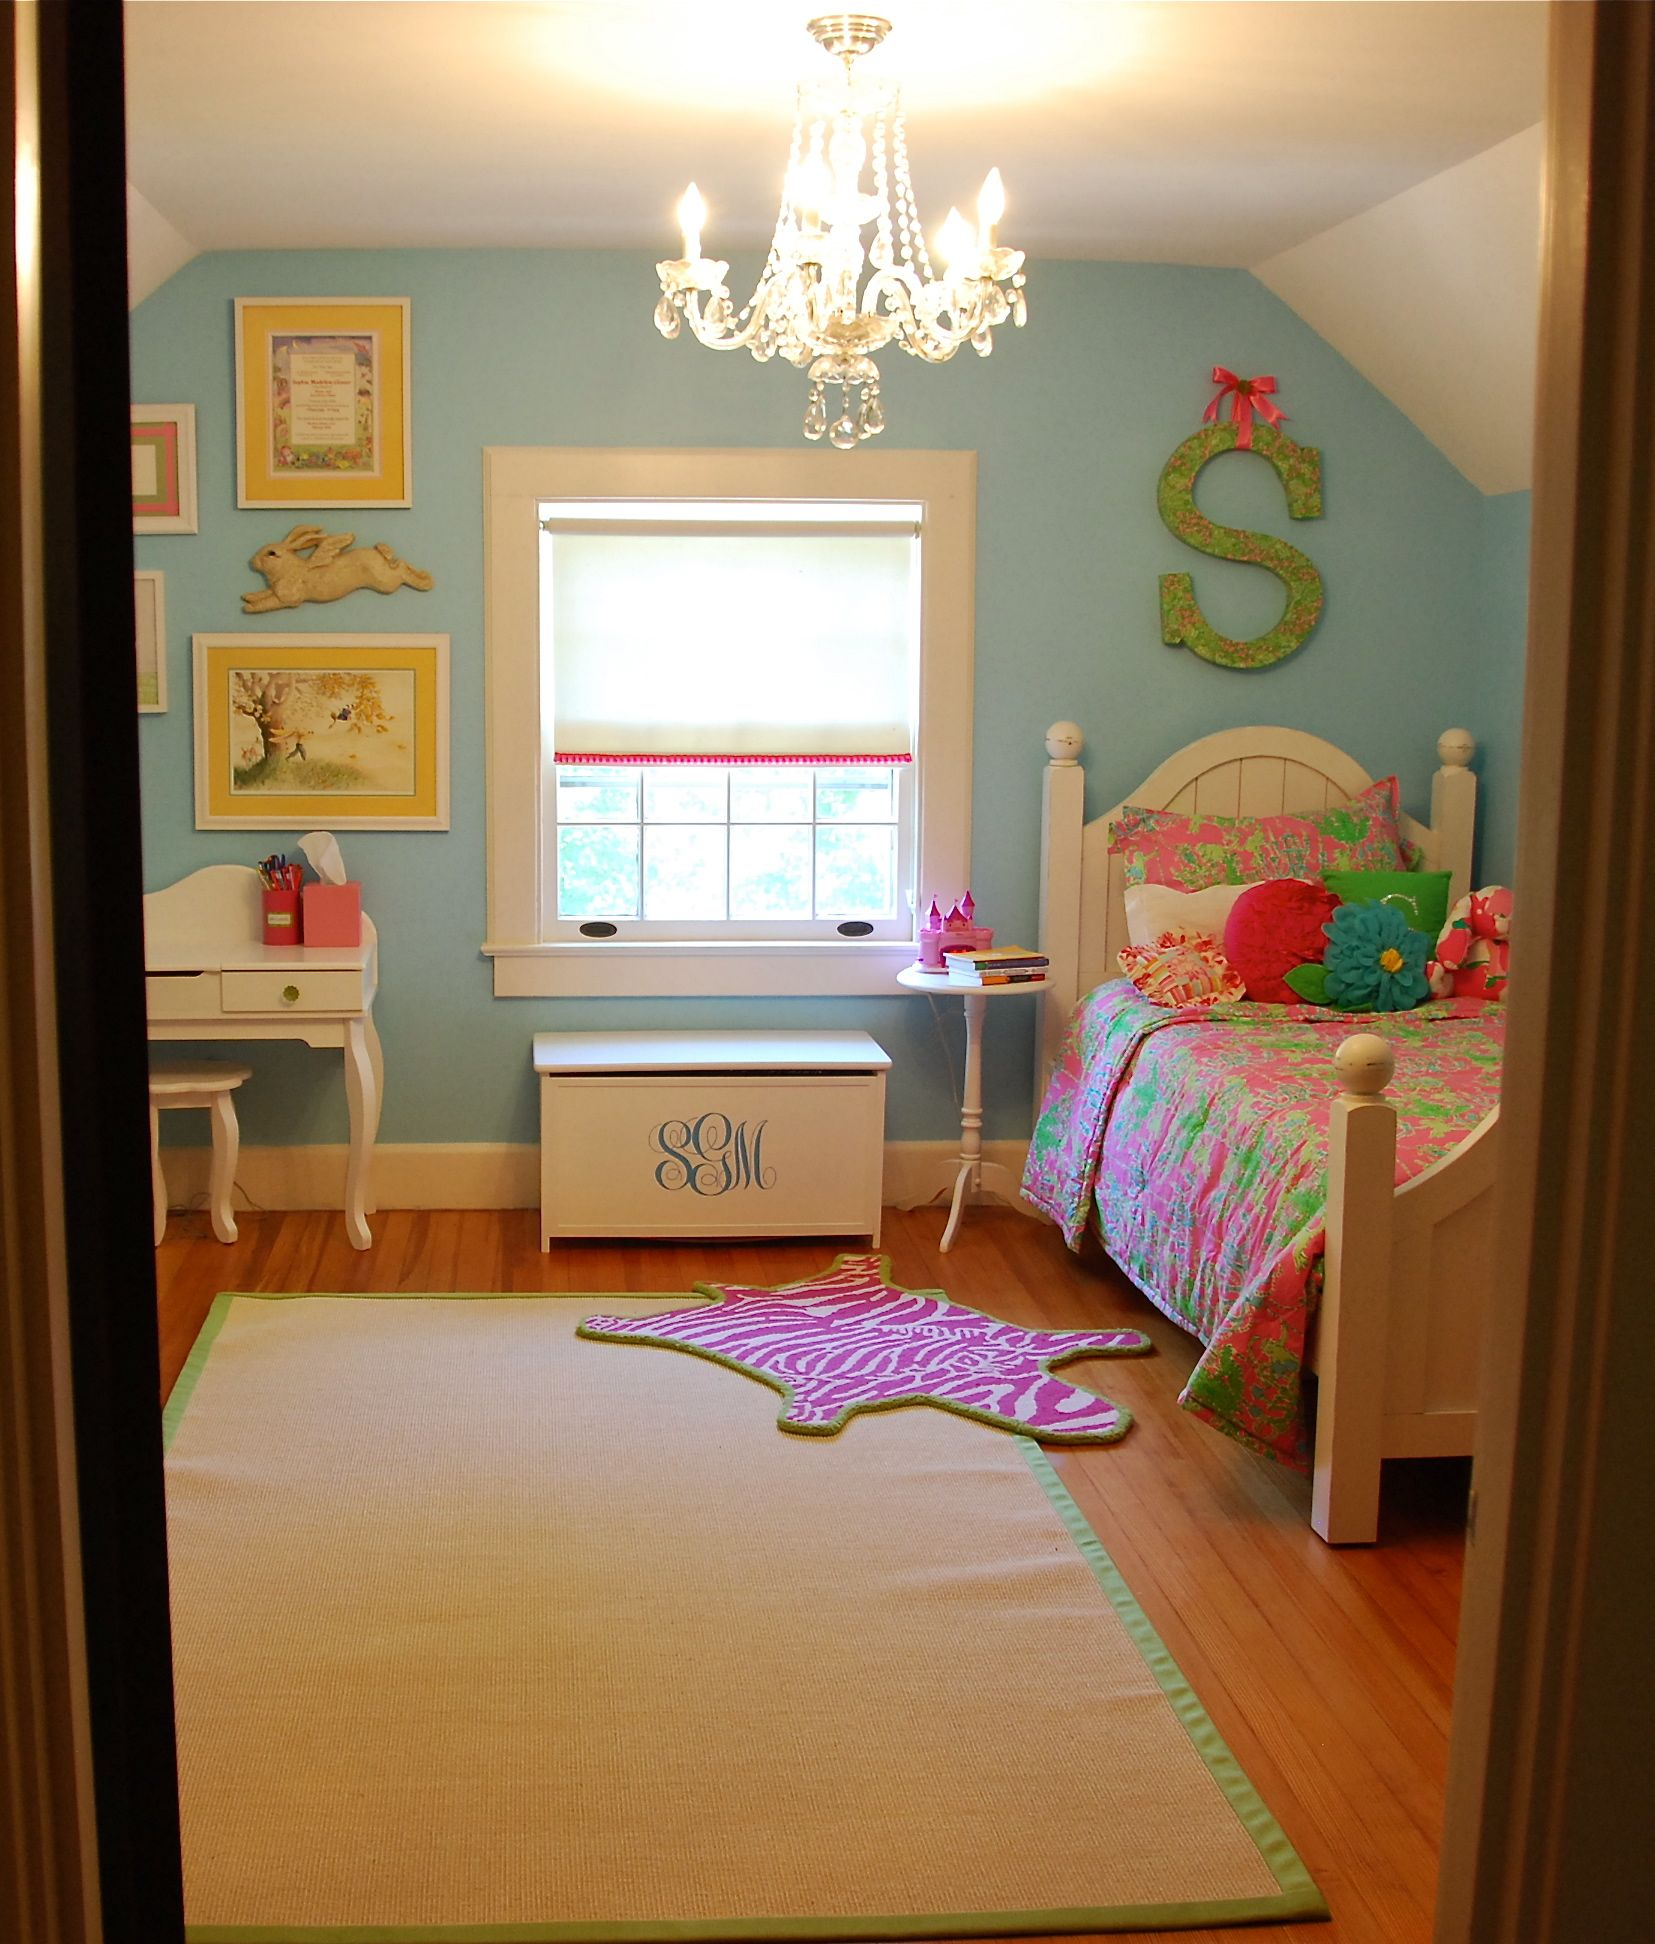 Bedroom Ideas For Girls Bed Ideas And Kids Bedroom: The Great Little Cutie Room Reveal